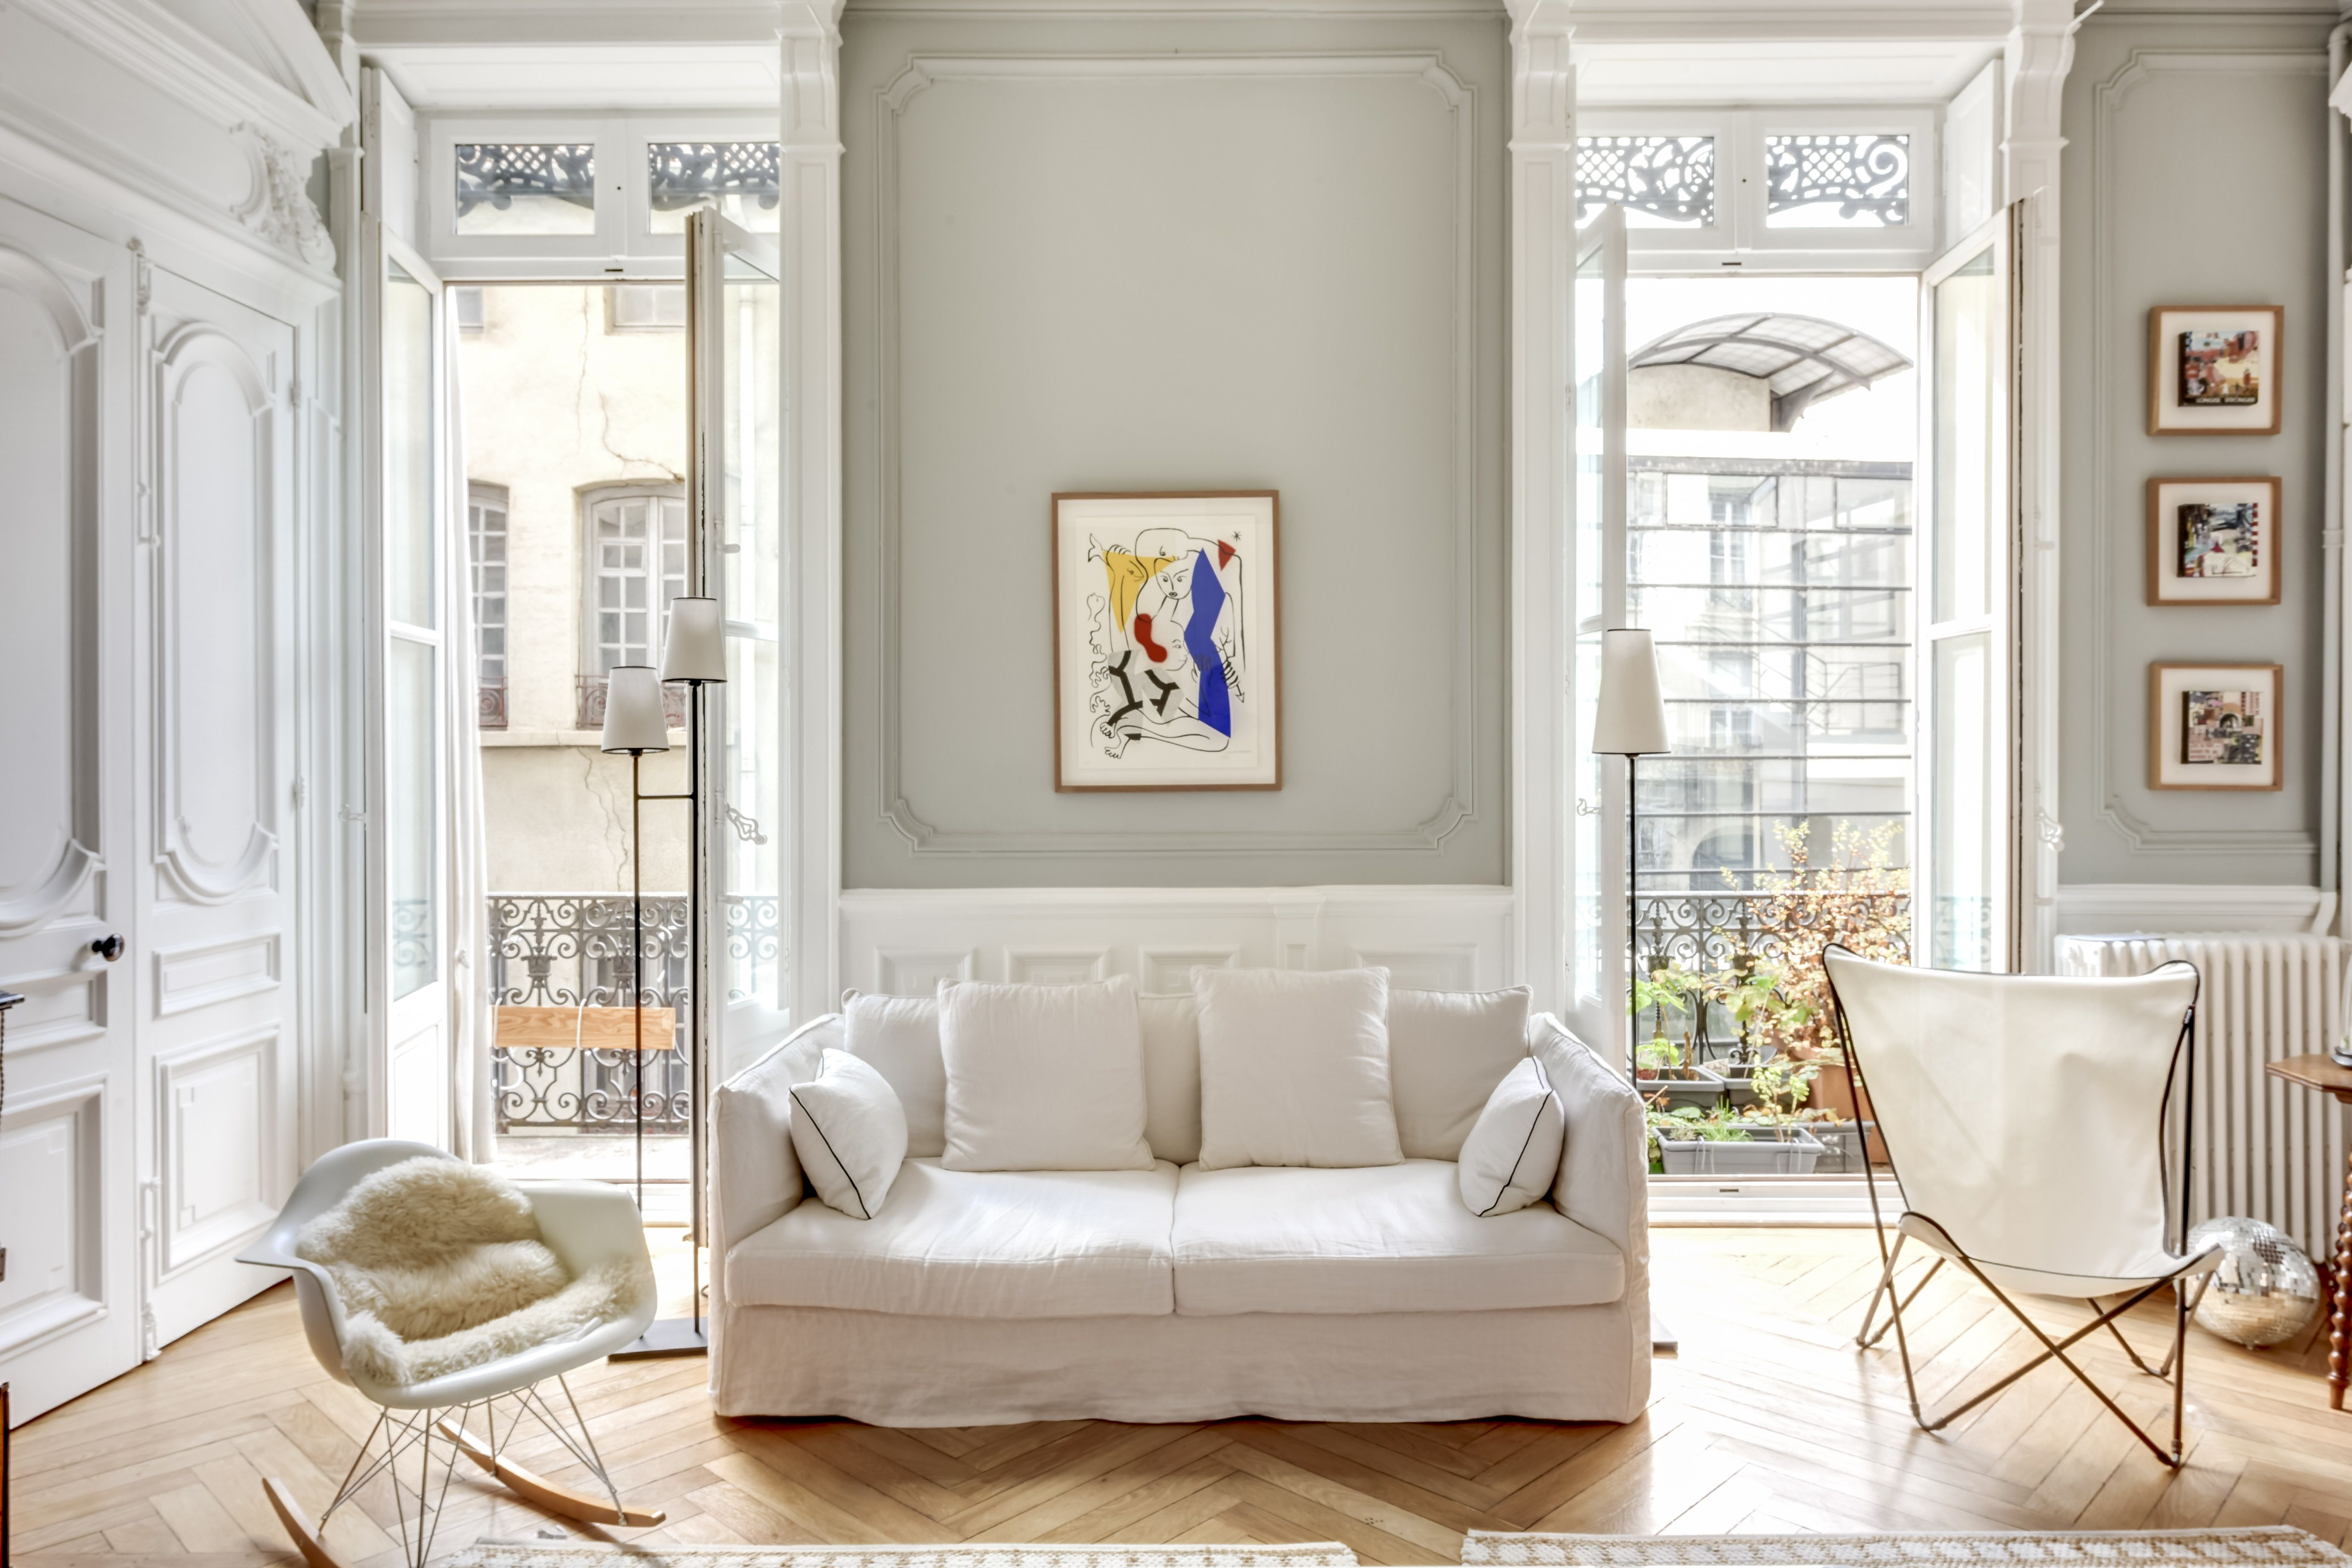 Small touch of colors for this white classy living room. Photoshoot ...